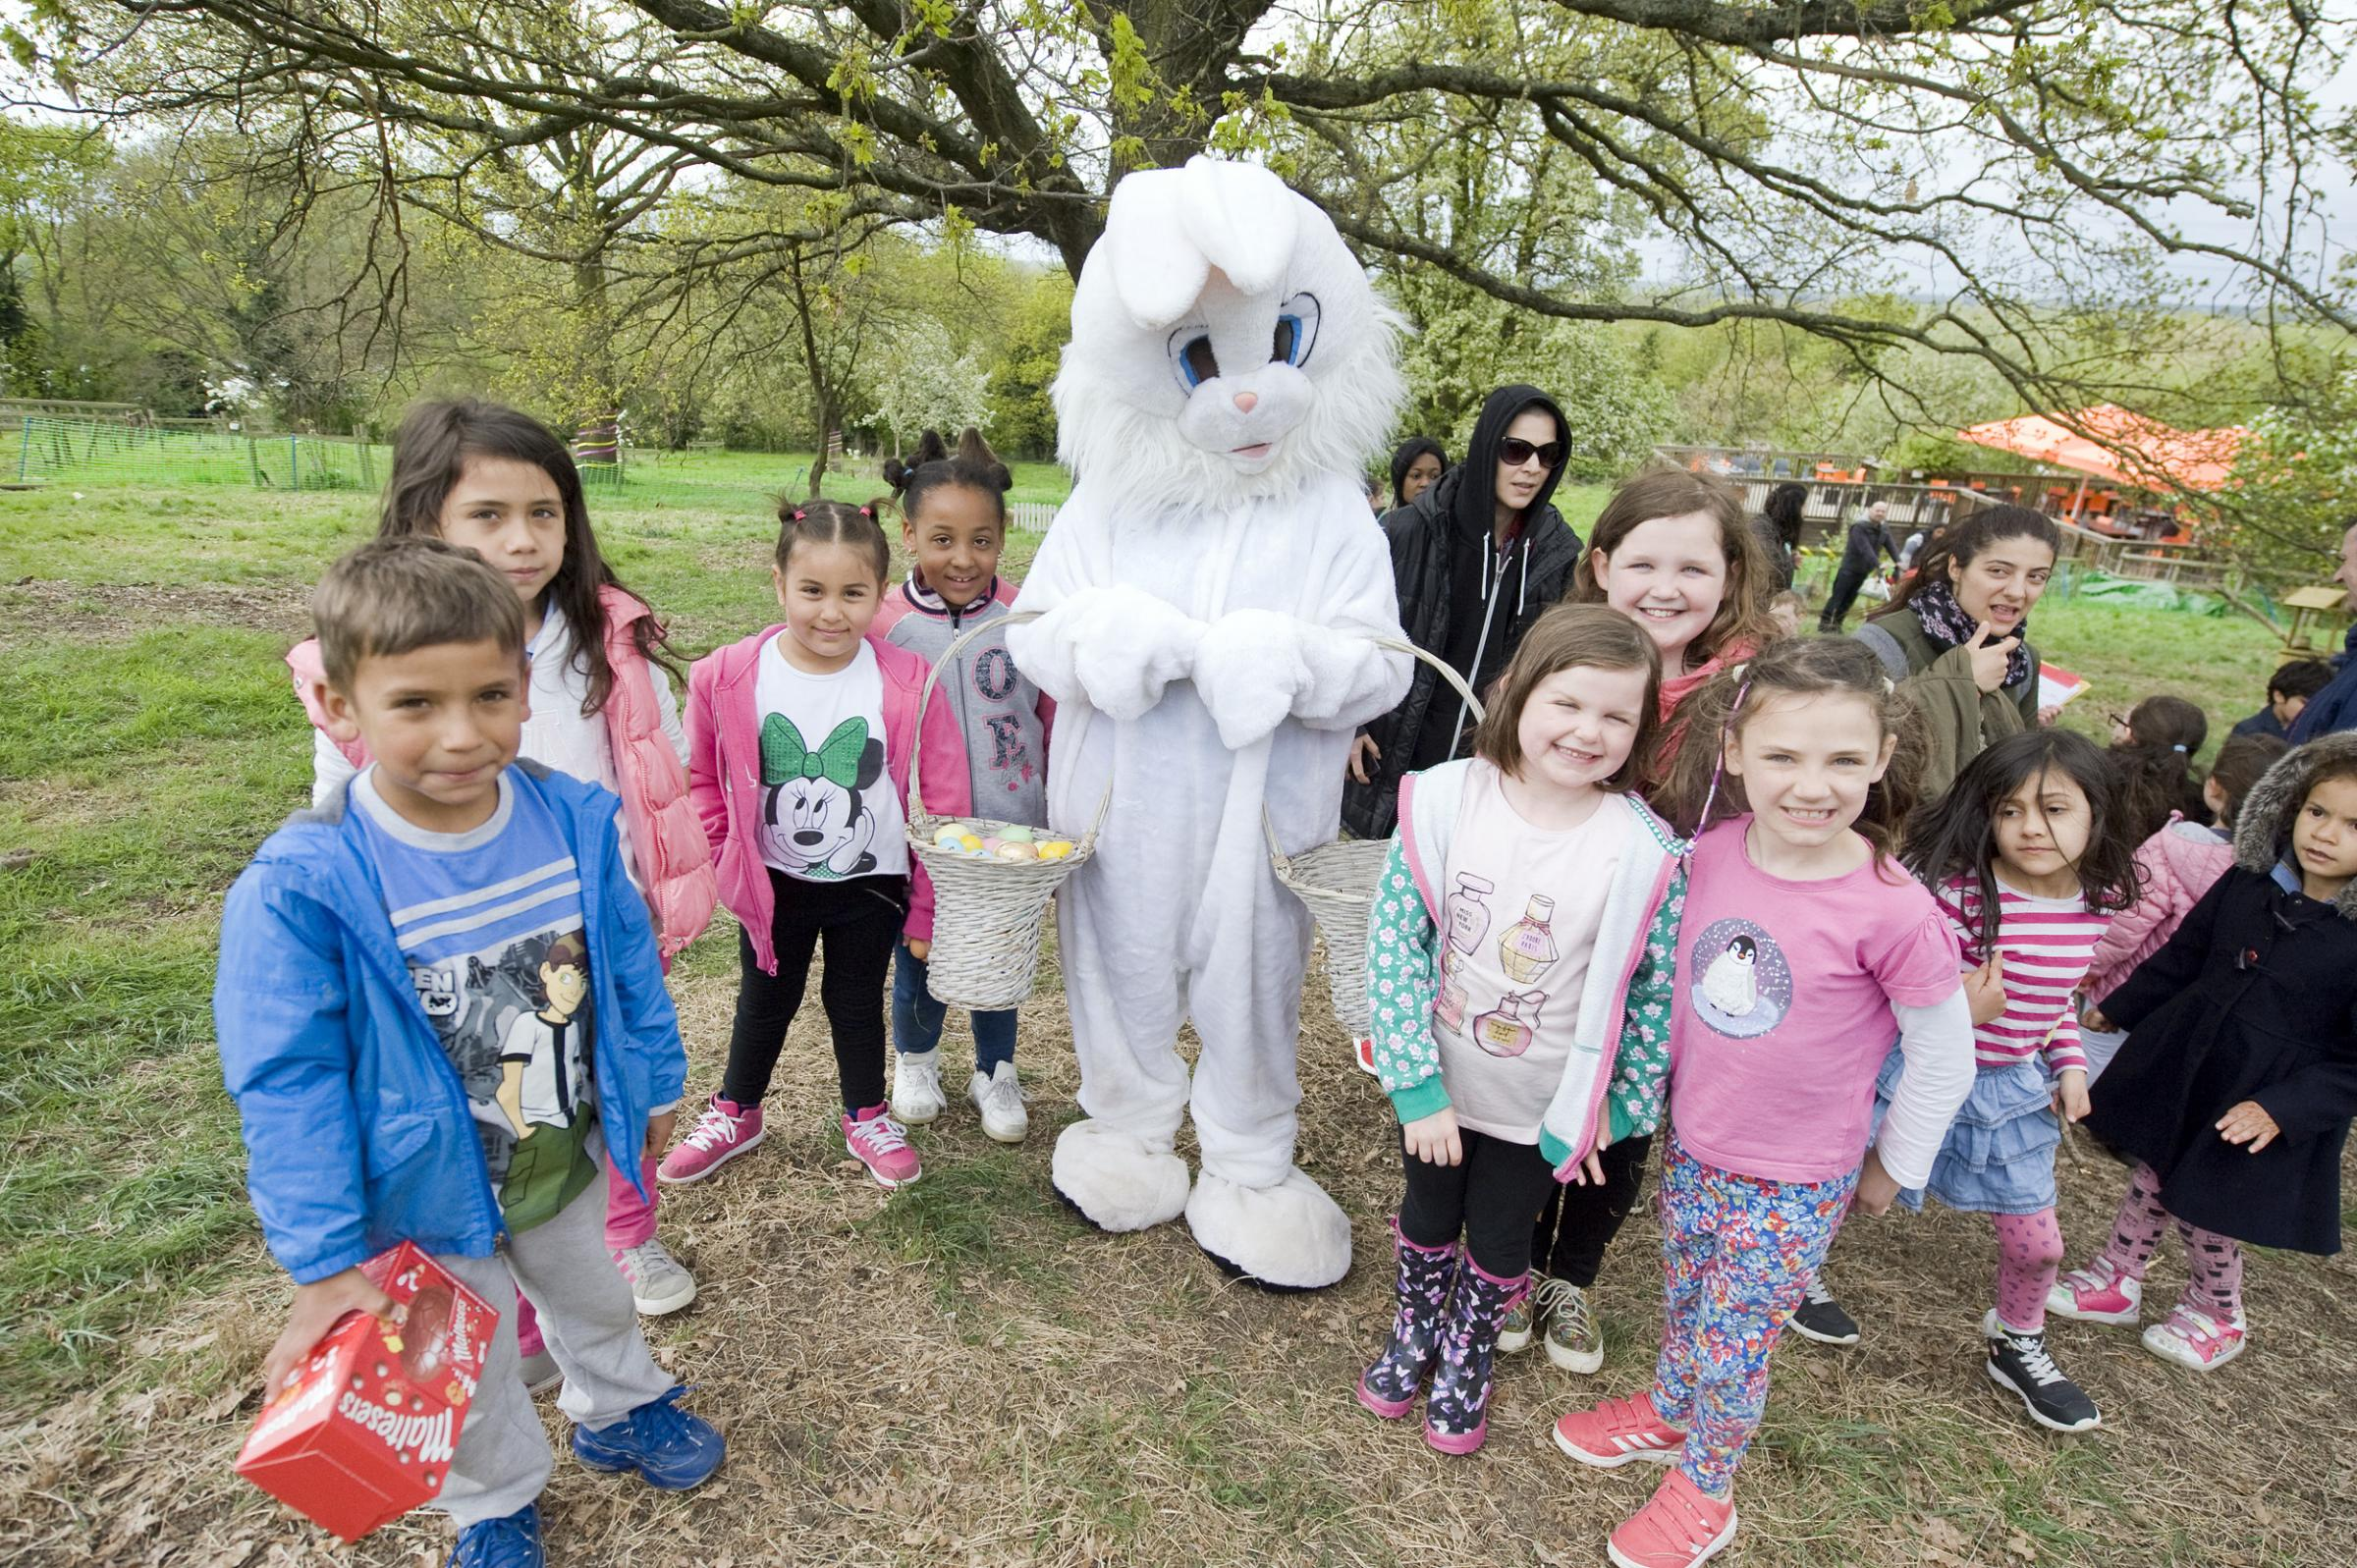 Lee Valley Easter events.